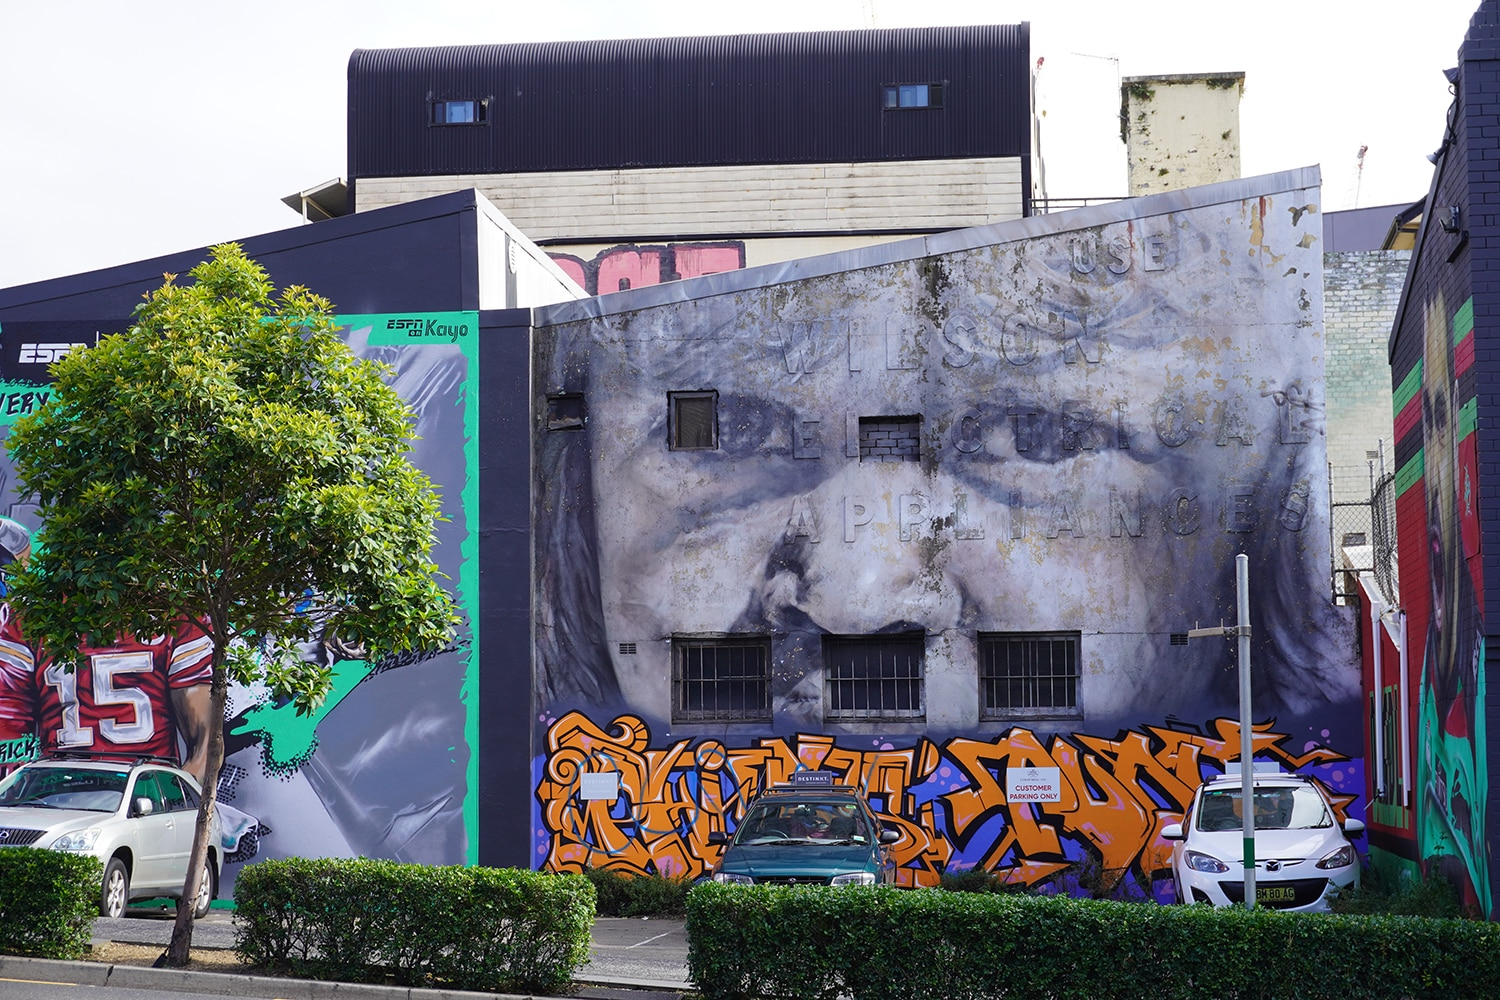 Woodburn Street Redfern Street Art Sydney Art Out Live February 2021 (2) Guido Van Helten